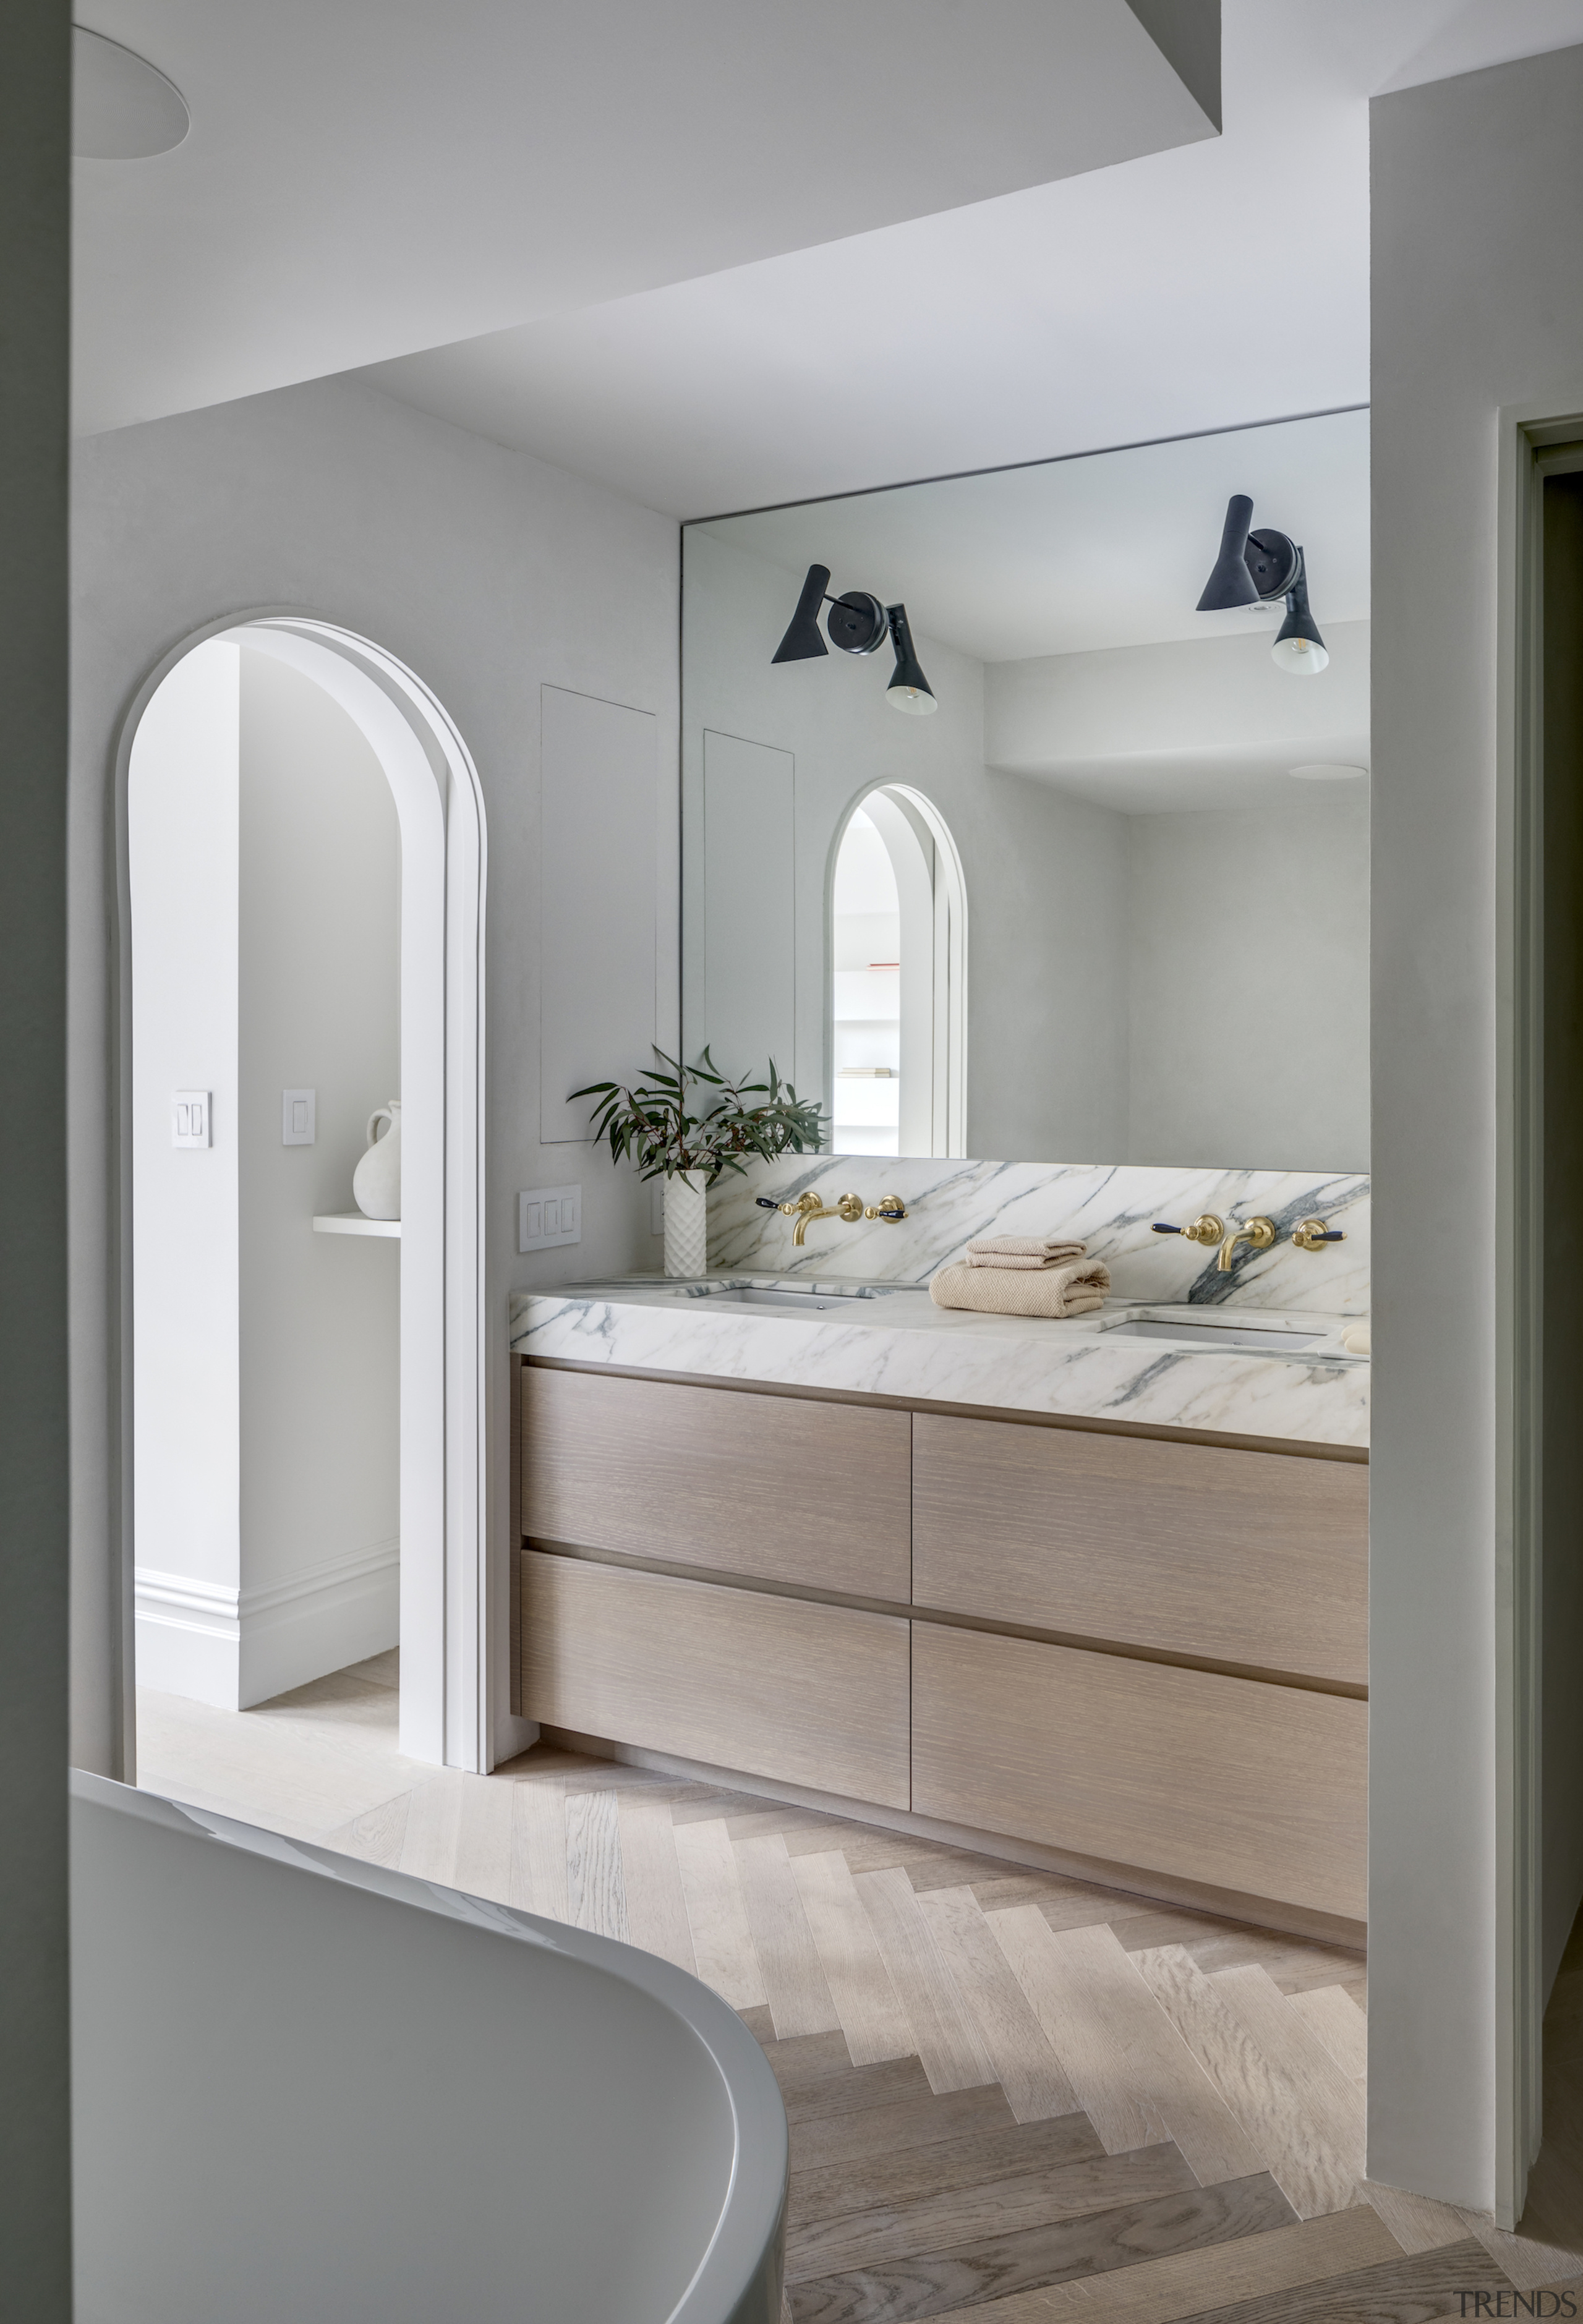 Arched doorways are a feature of the interior,